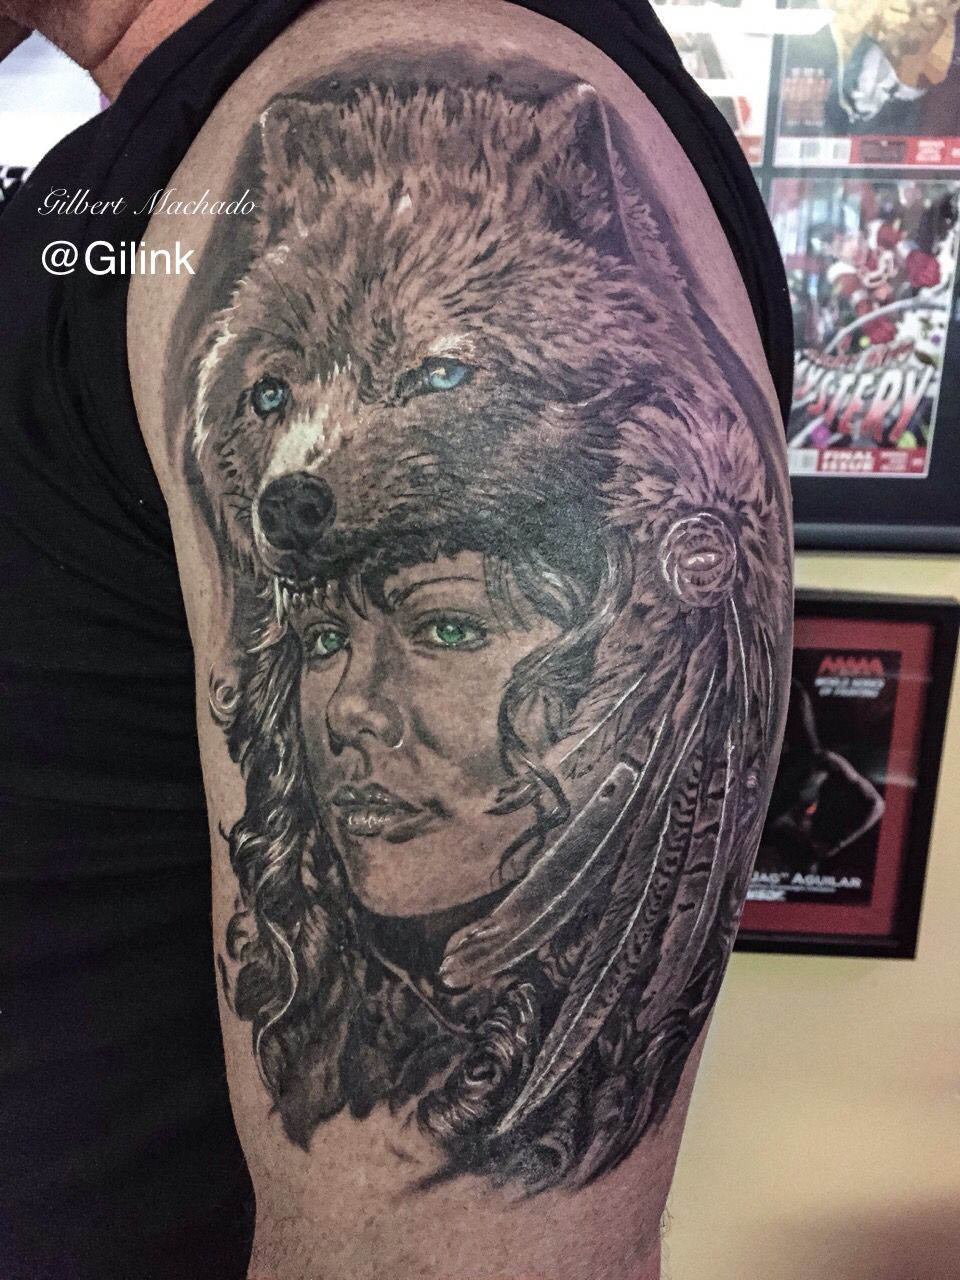 Tattoo Tattoos Black Rose Black And Gray Wolf Head Girl With